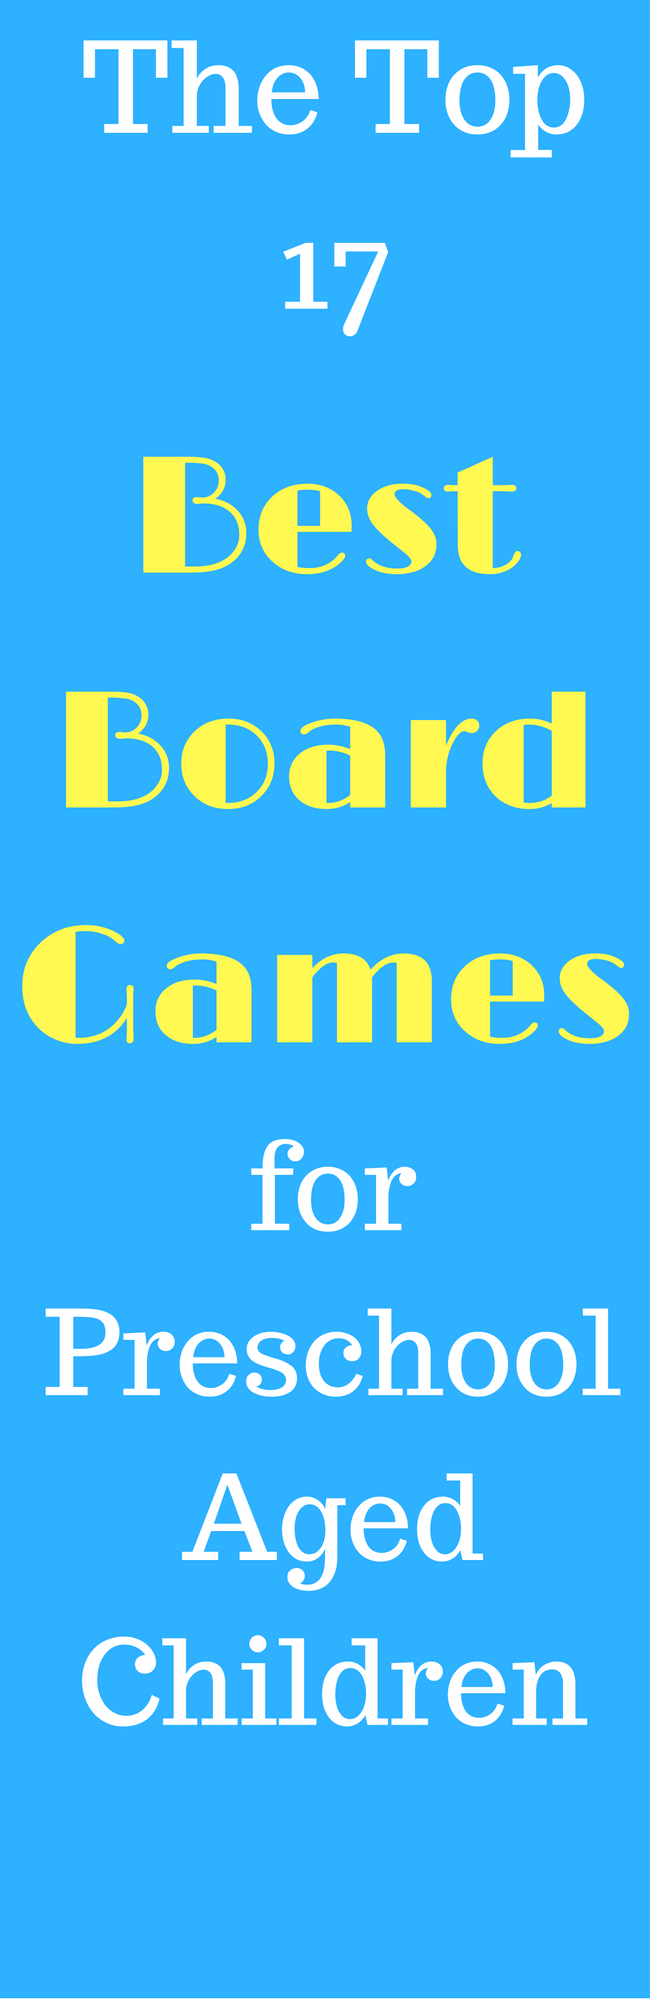 17 Of the BEST Board games for preschoolers that your child will LOVE! via @clarkscondensed